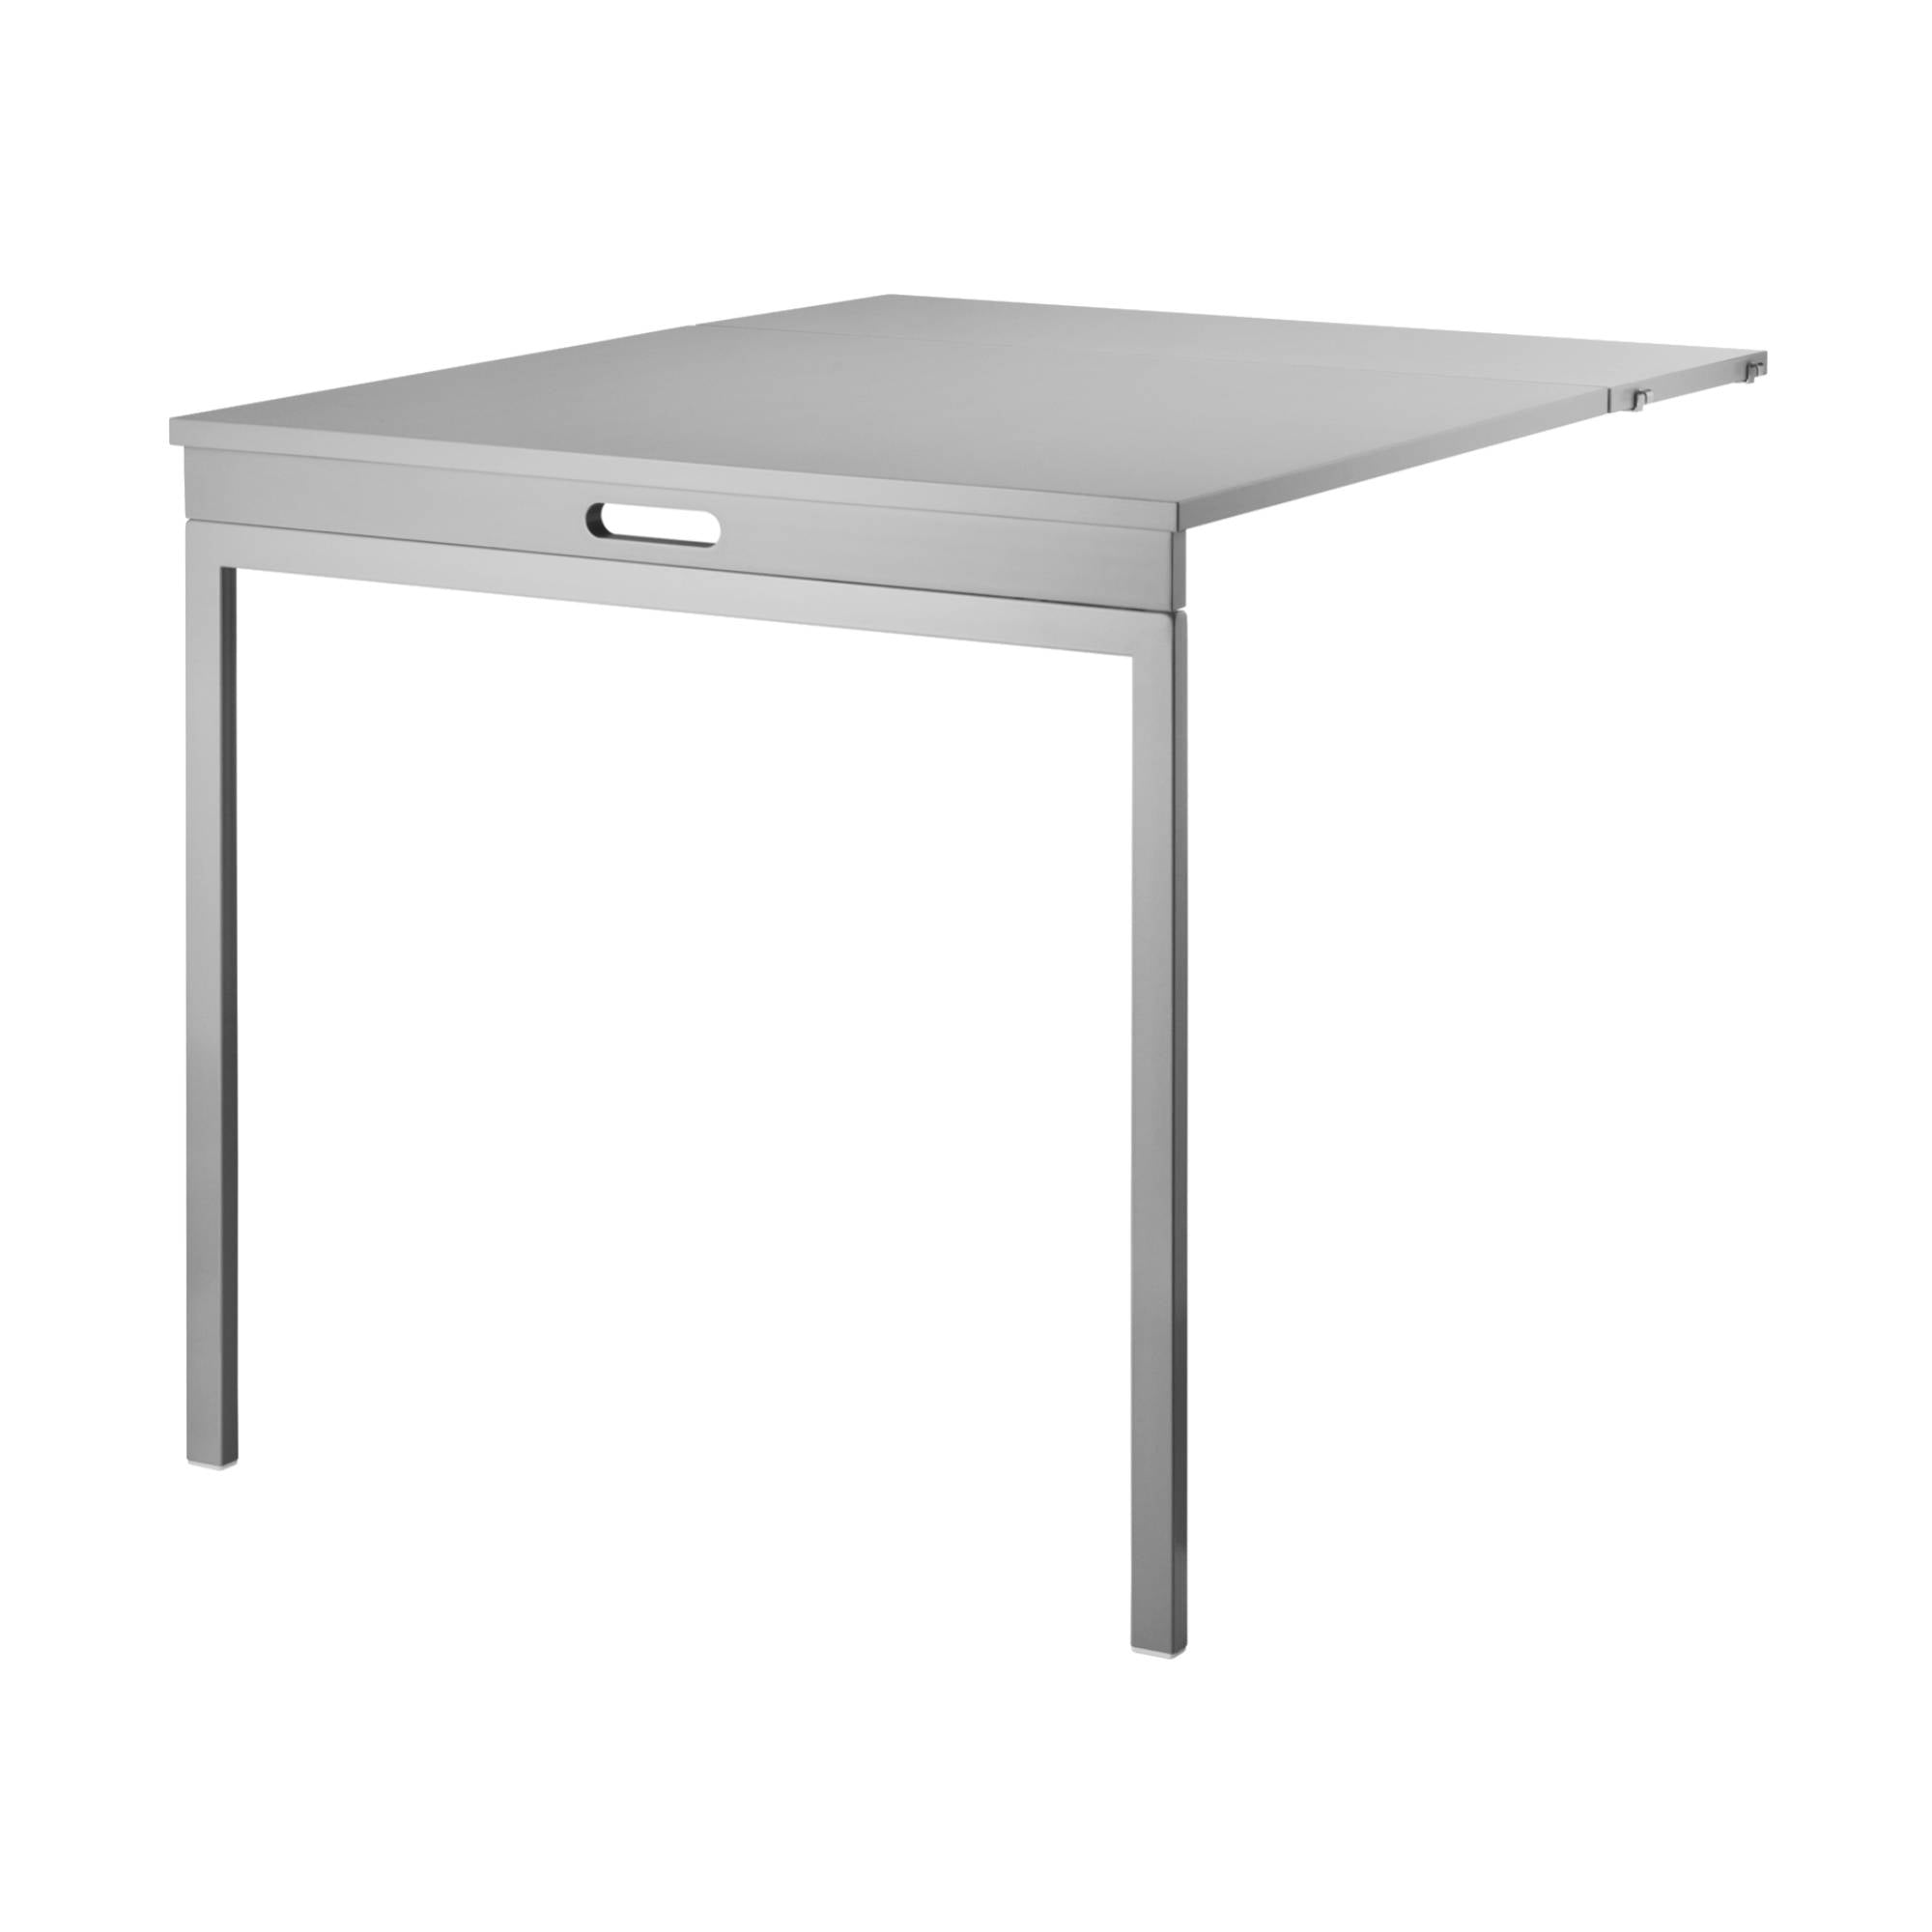 String Shelving System Folding Table: Grey + Grey Legs